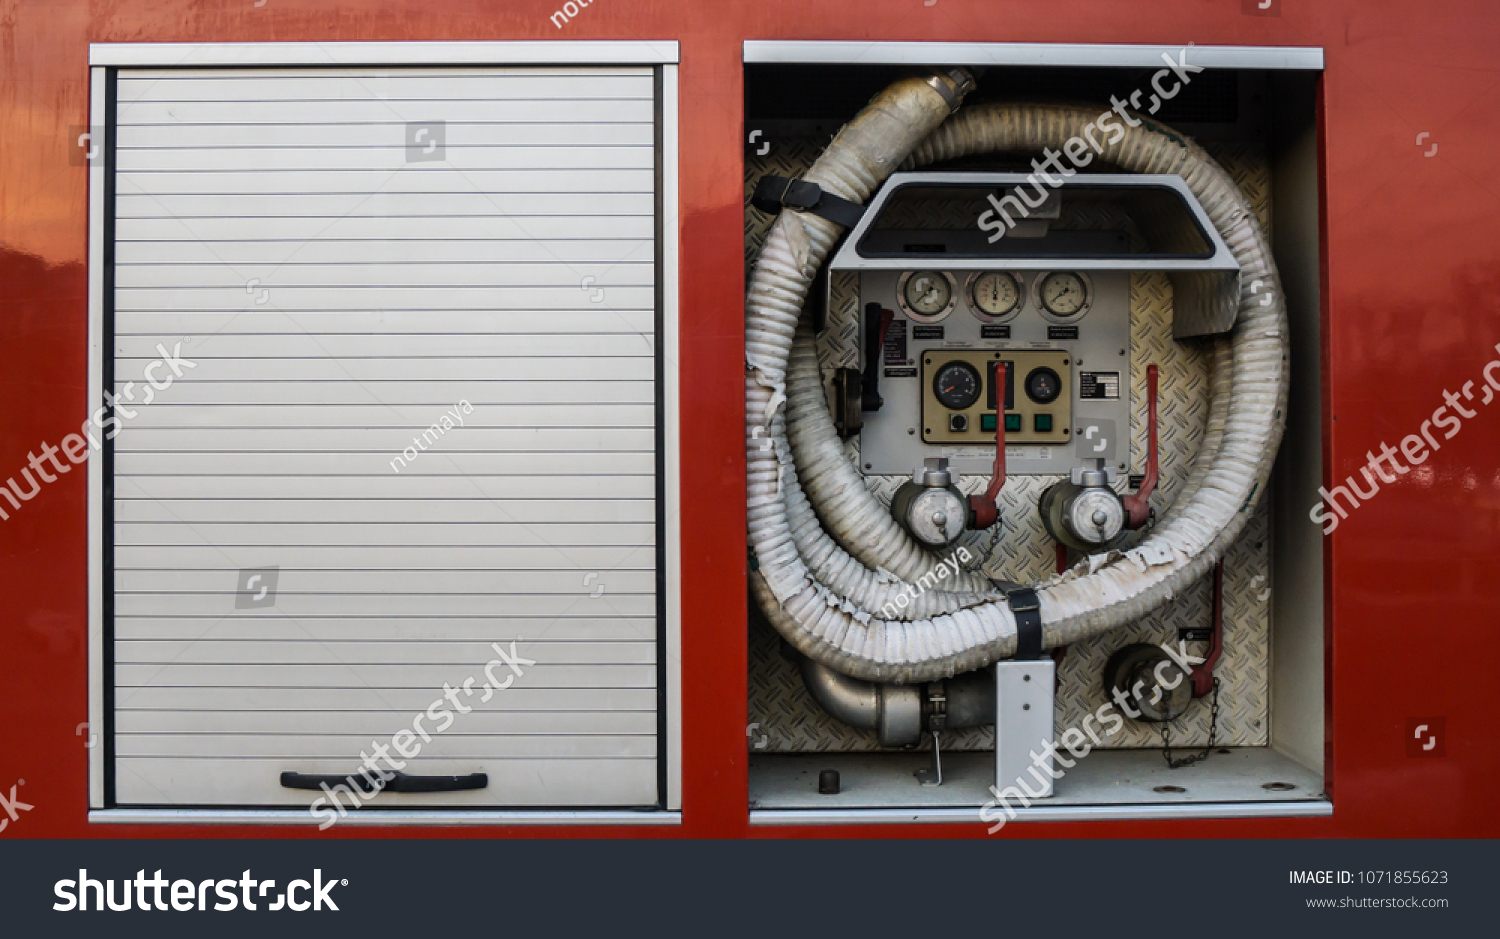 Fire Truck Control Panel Stock Photo Edit Now 1071855623 Engine Diagram